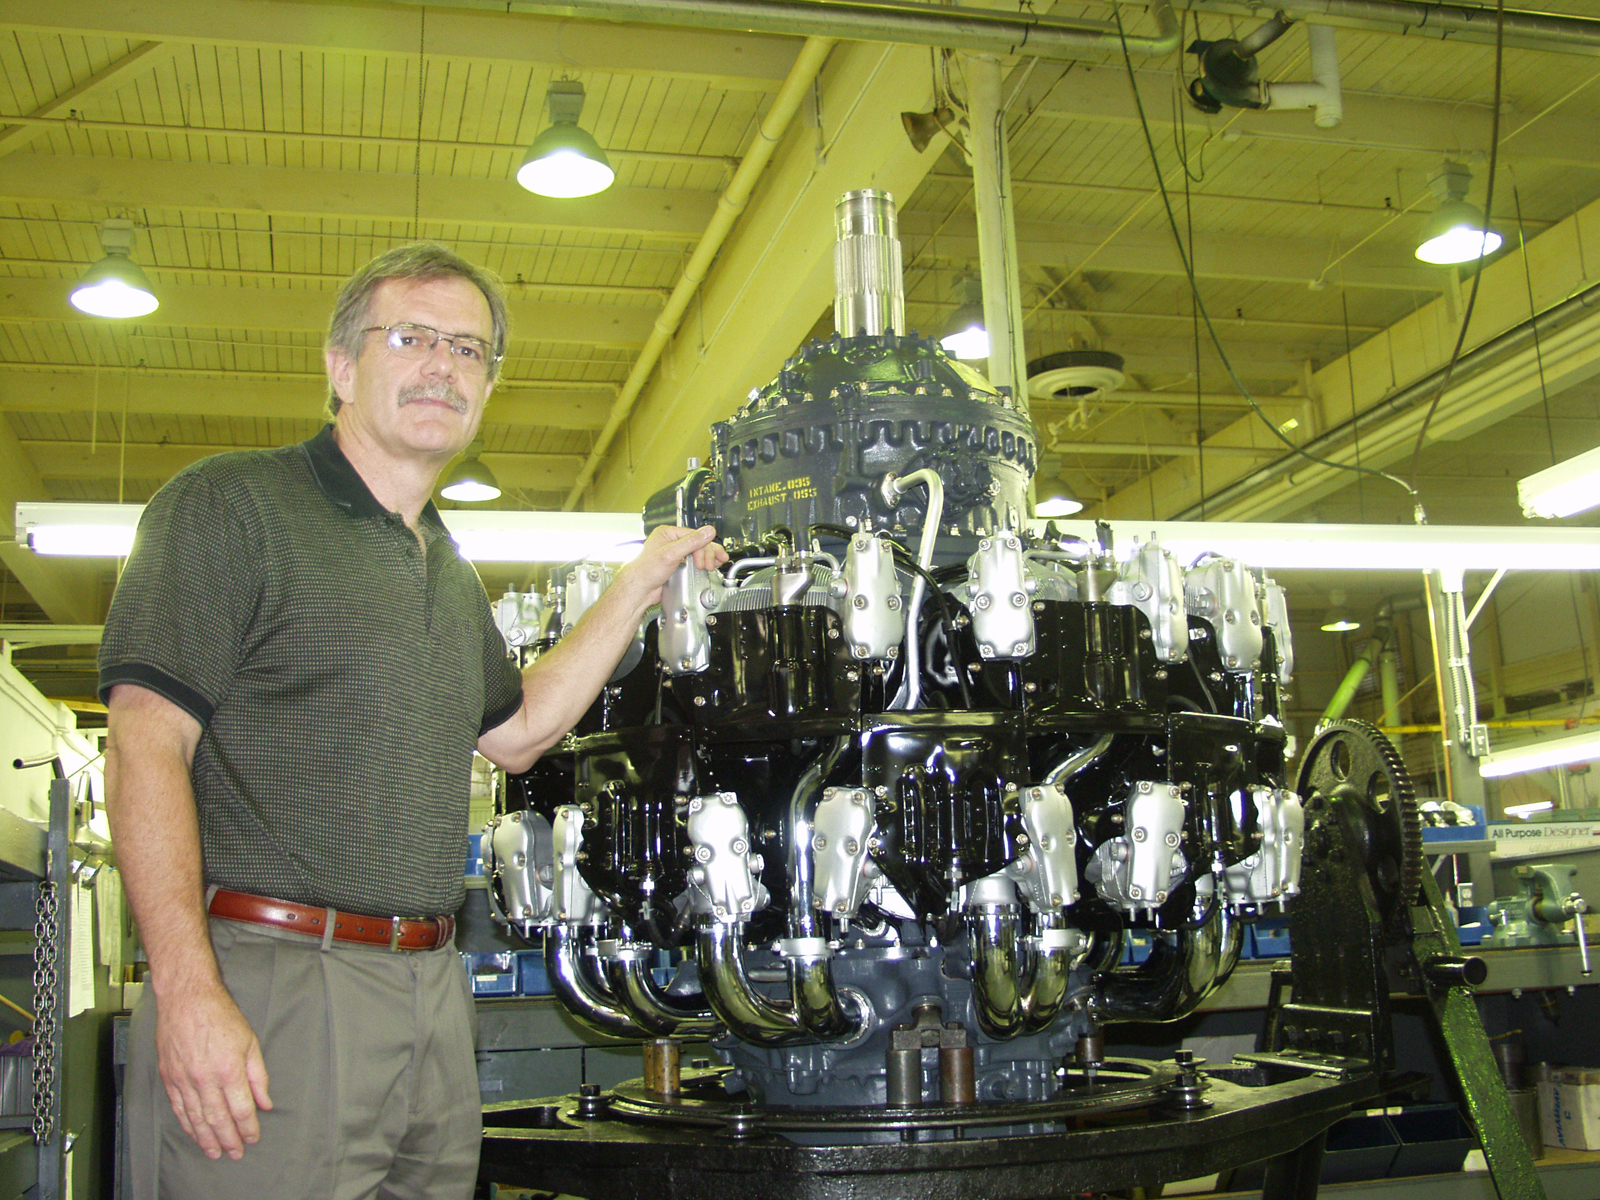 Precision Engines' Radial Engine Expertise Keeps Warbirds, Firefighting Bombers Flying